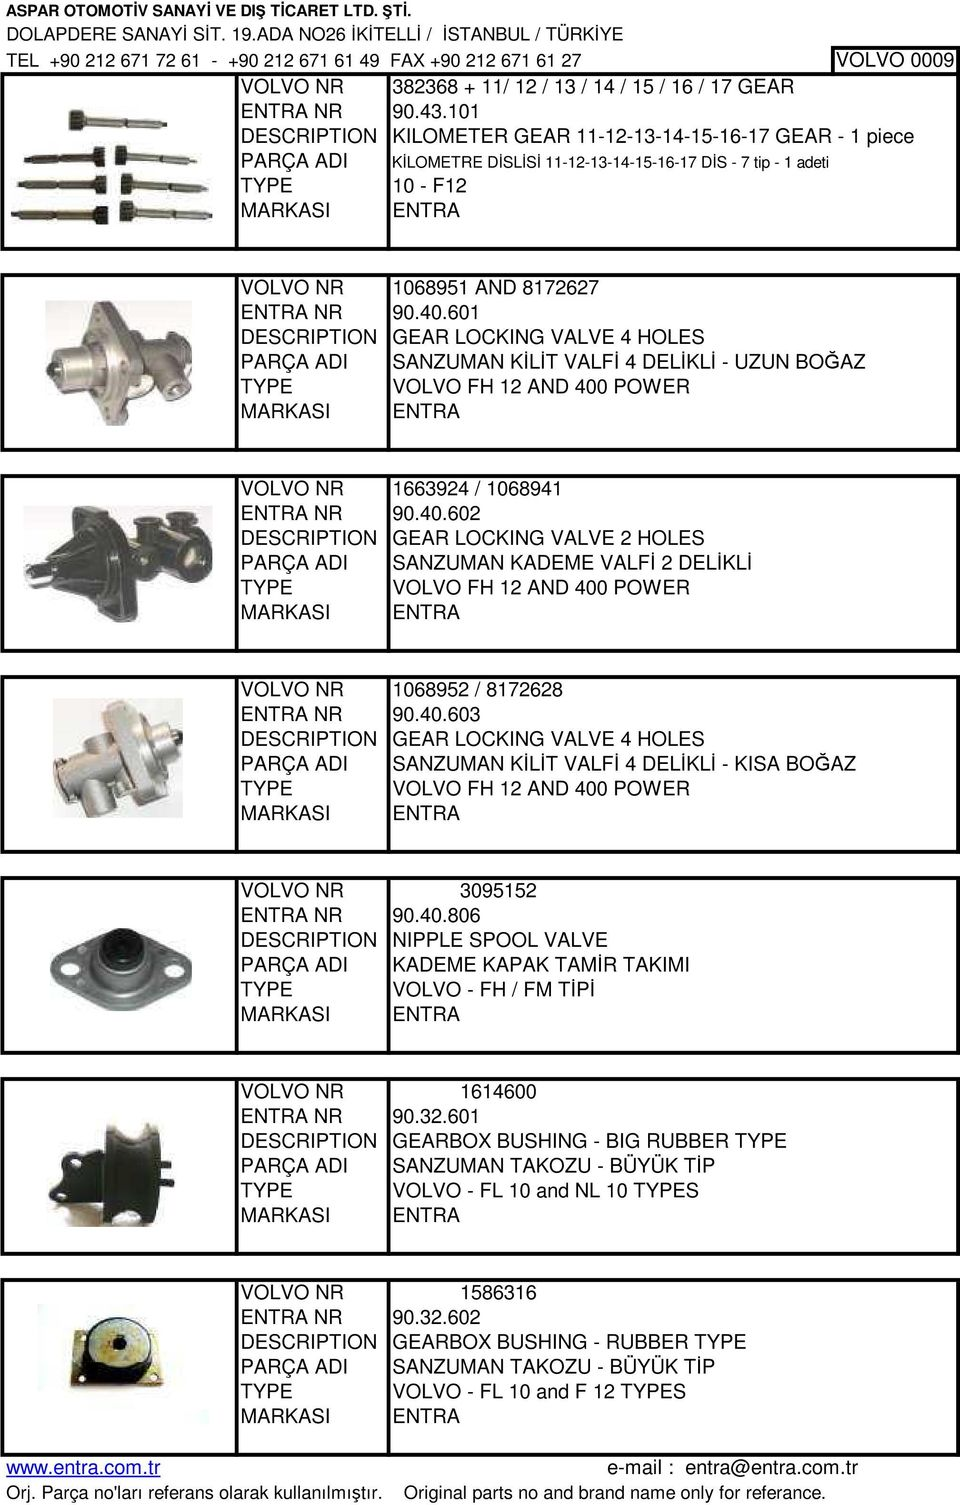 601 DESCRIPTION GEAR LOCKING VALVE 4 HOLES PARÇA ADI SANZUMAN KİLİT VALFİ 4 DELİKLİ - UZUN BOĞAZ TYPE VOLVO FH 12 AND 400